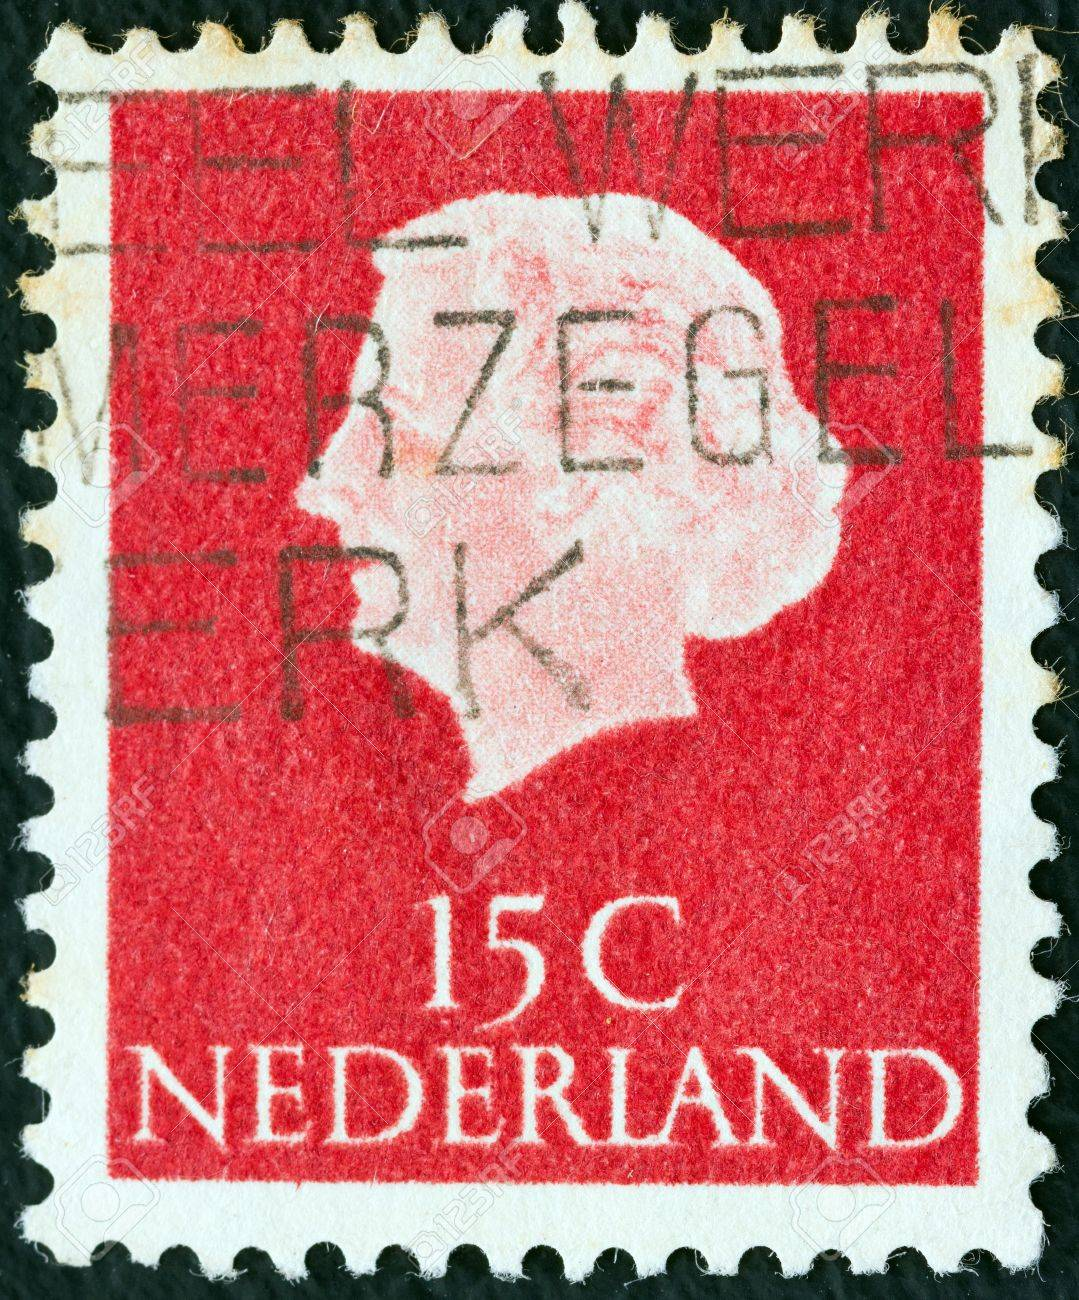 NETHERLANDS - CIRCA 1953: A stamp printed in the Netherlands shows Queen Juliana, circa 1953.  Stock Photo - 16337680